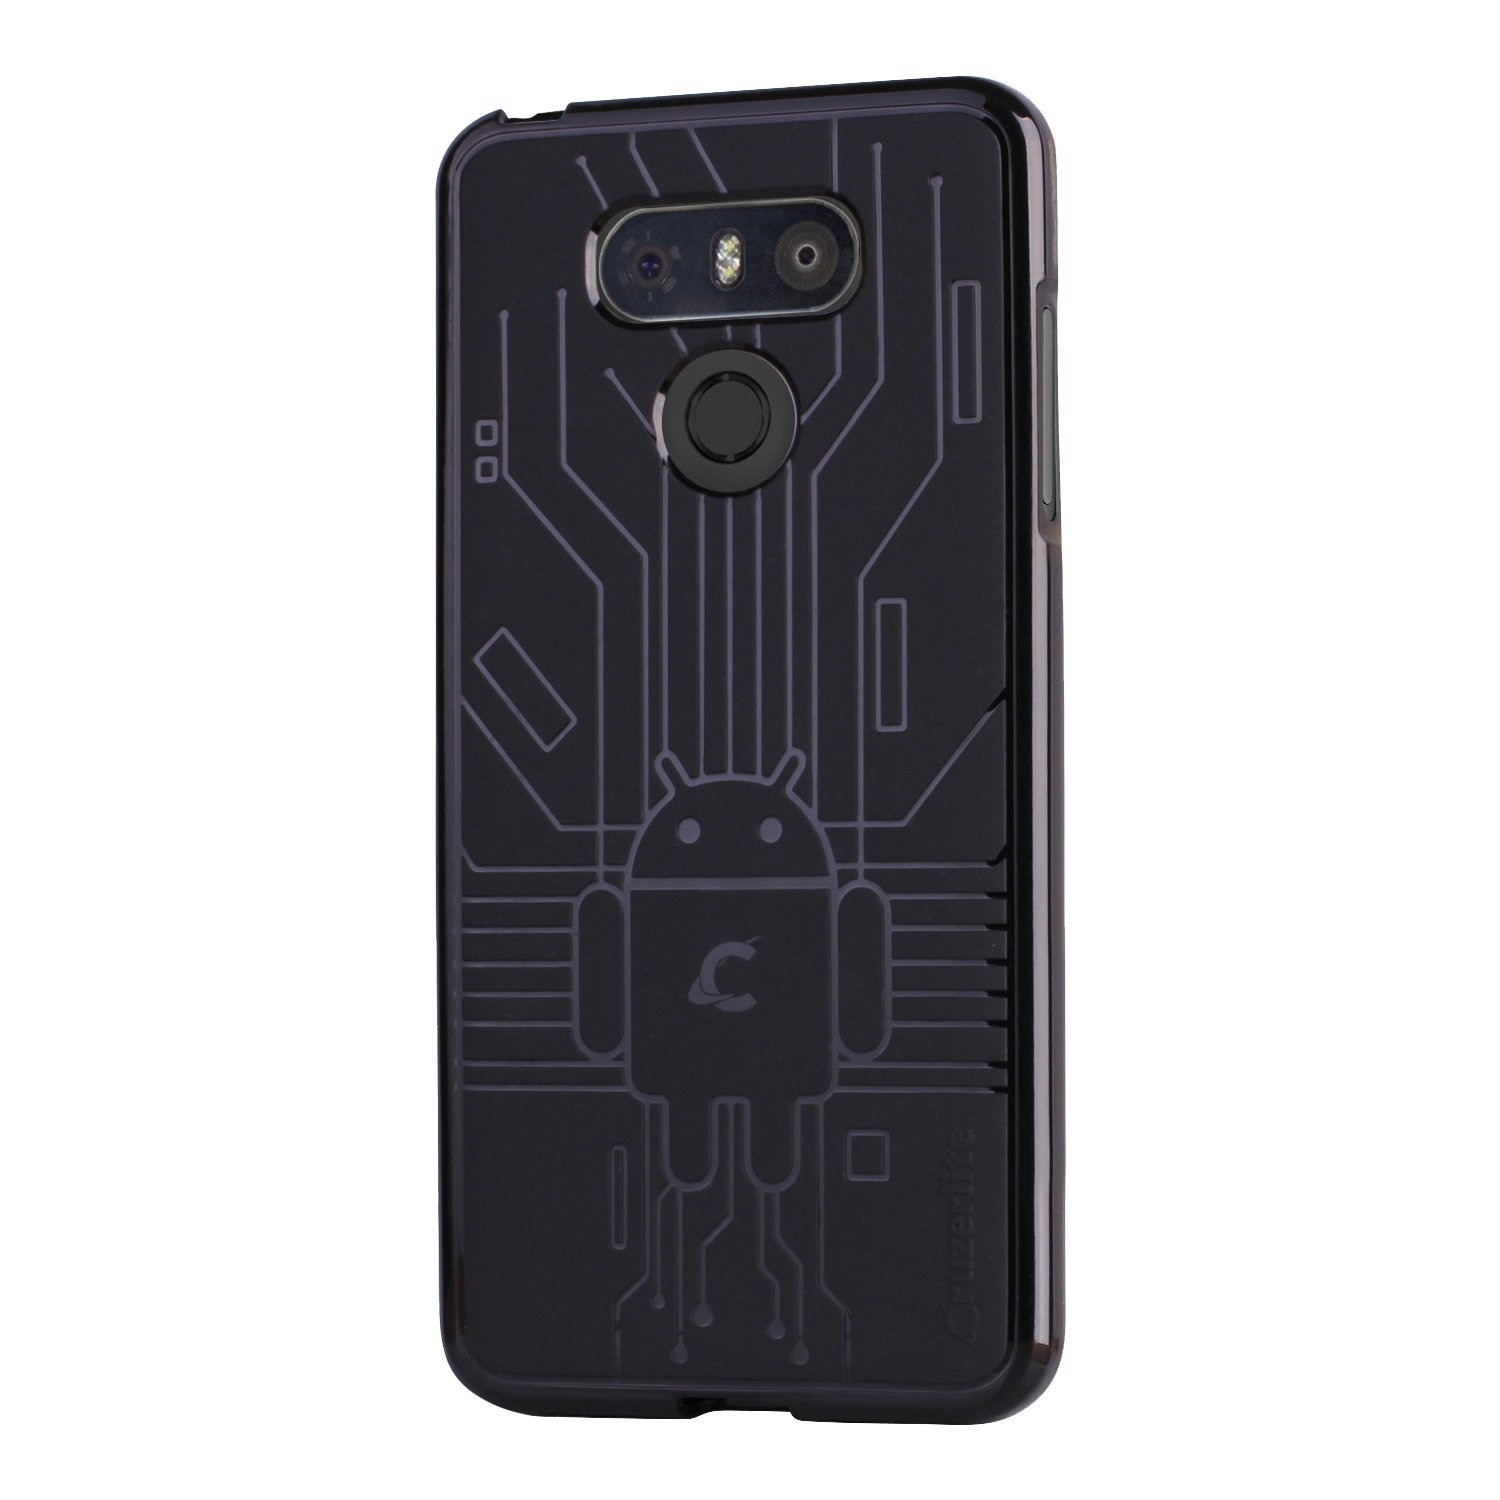 Cruzerlite-Bugdroid-Circuit-TPU-best-LG-G6-Cases-and-covers.